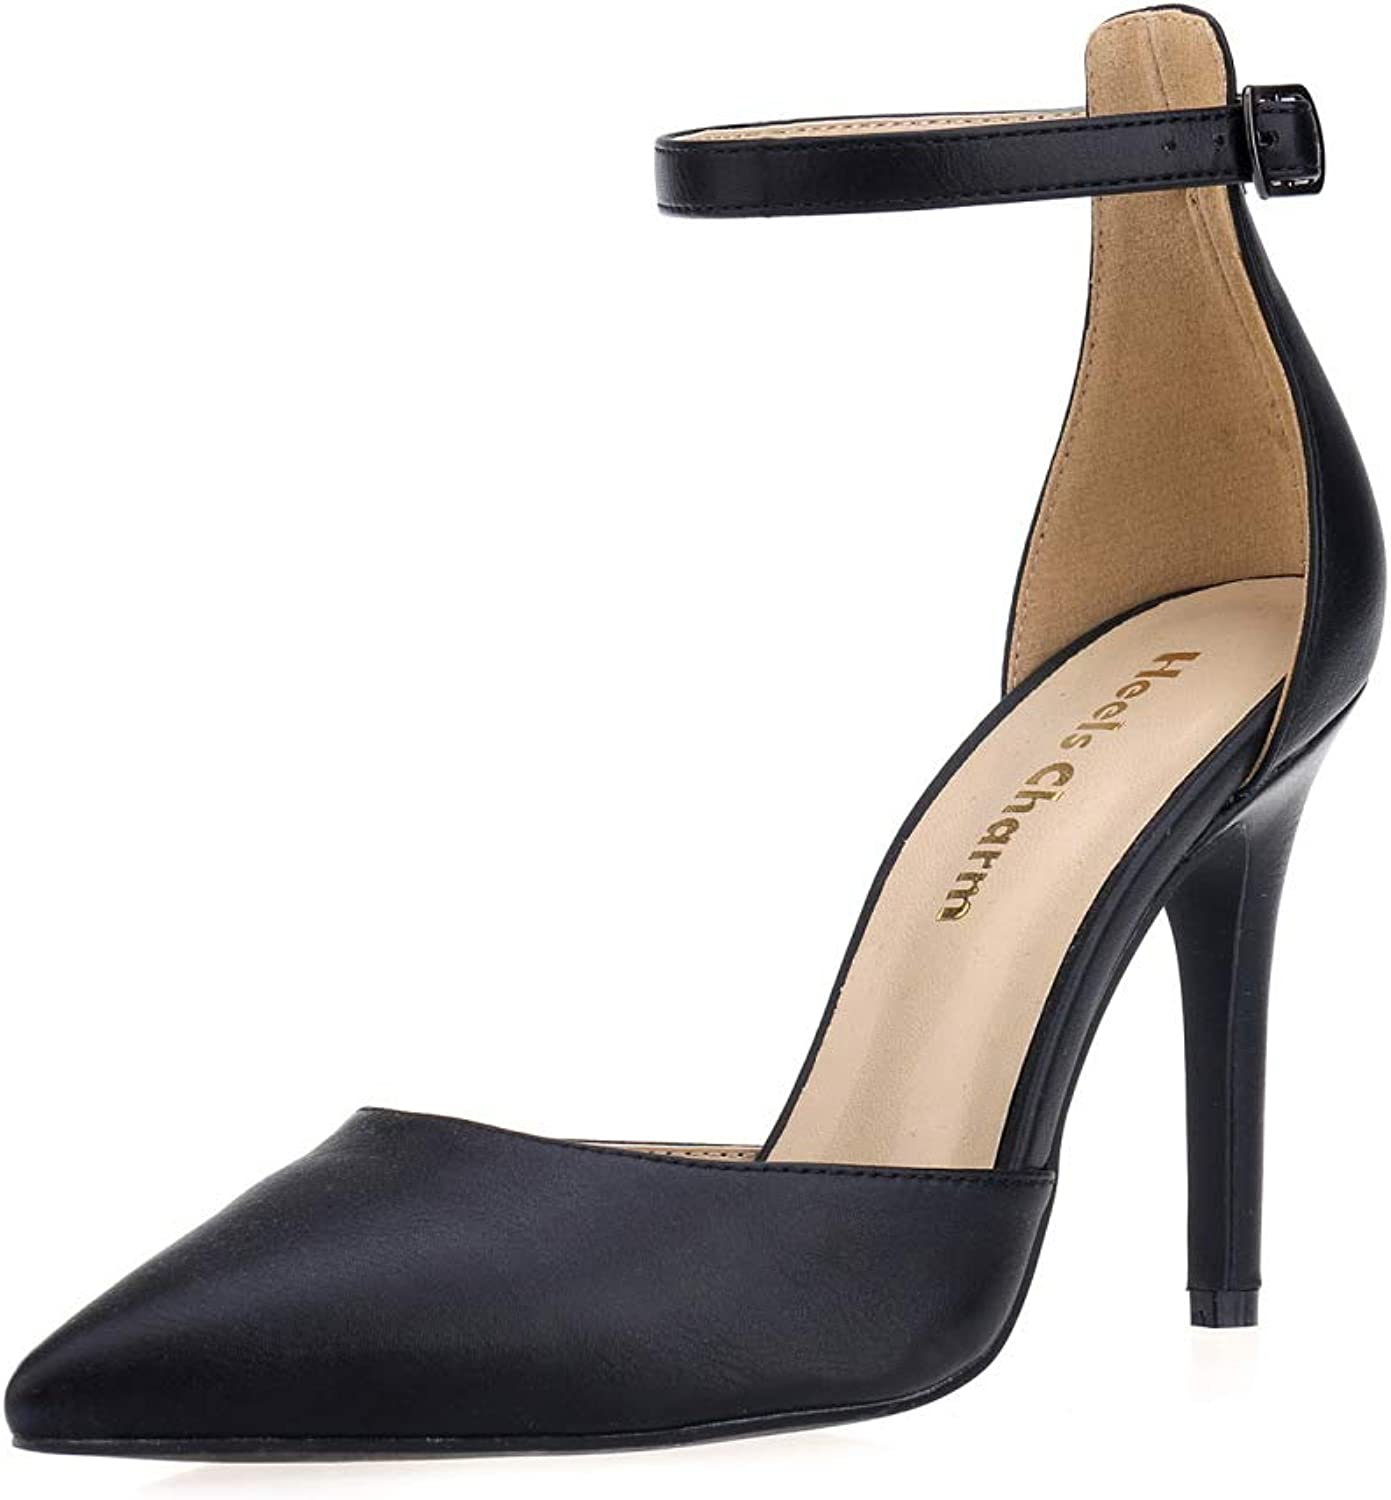 Women's Lace Up Heel Pumps Stilettos Pointed Toe High Heel Strappy Heels Dress shoes